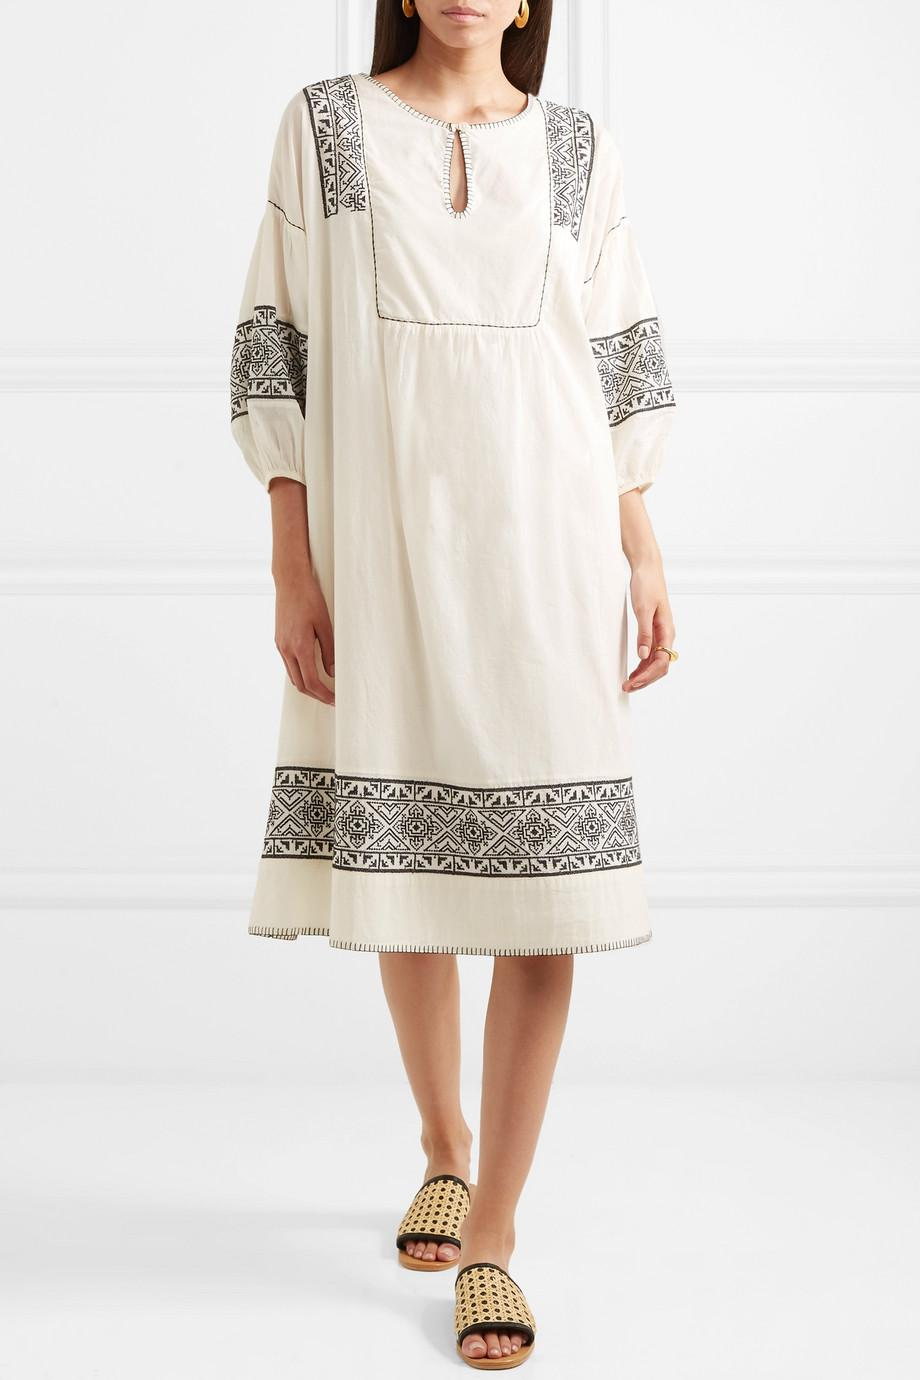 The Lovely Embroidered Cotton-gauze Dress - Cream The Great. fac5lmHhV